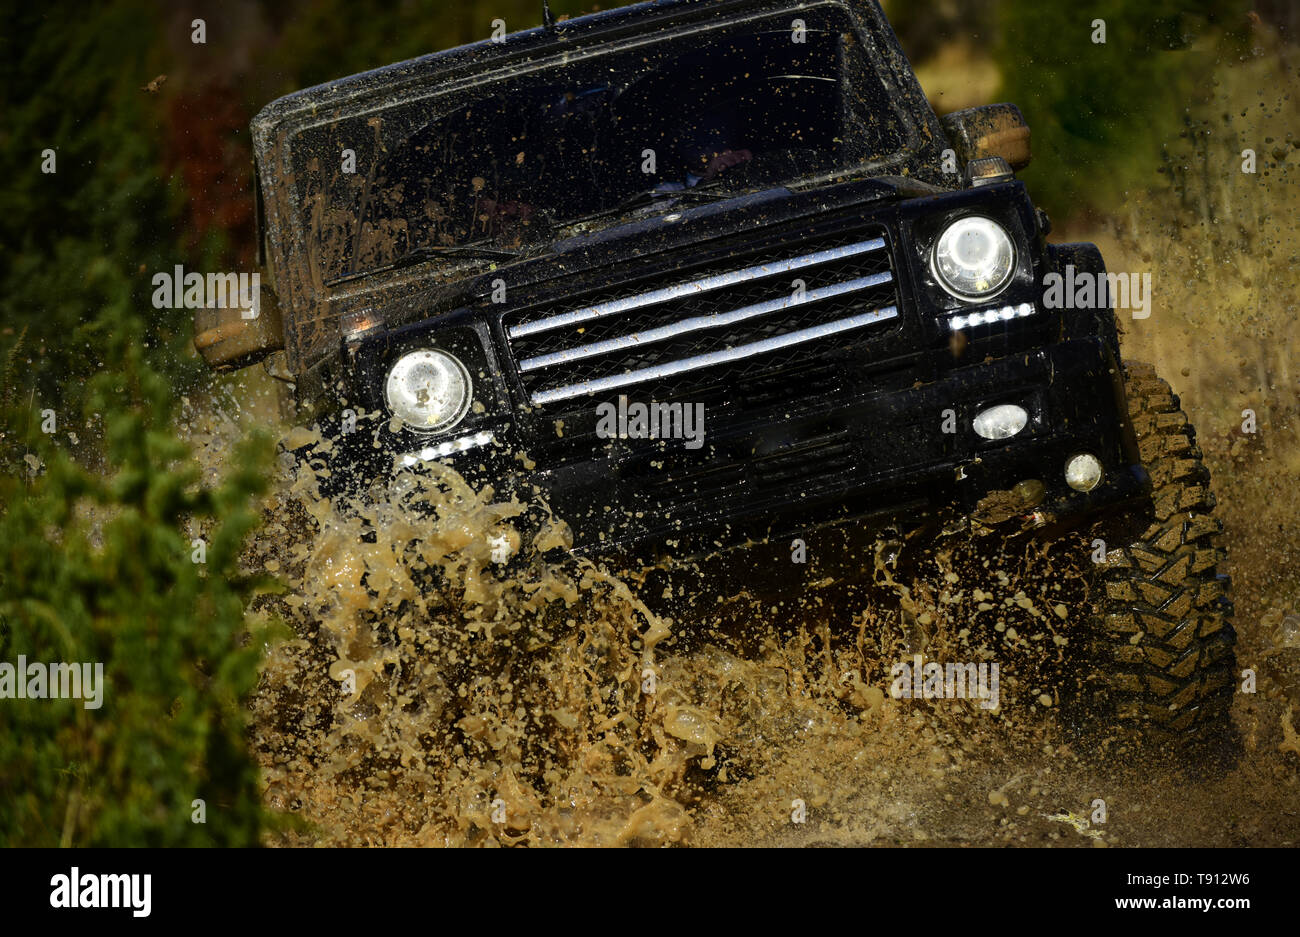 Competition, energy and motorsport concept. Off road vehicle or SUV crossing puddle with dirt splash. Car racing in autumn forest. Auto racing on fall - Stock Image